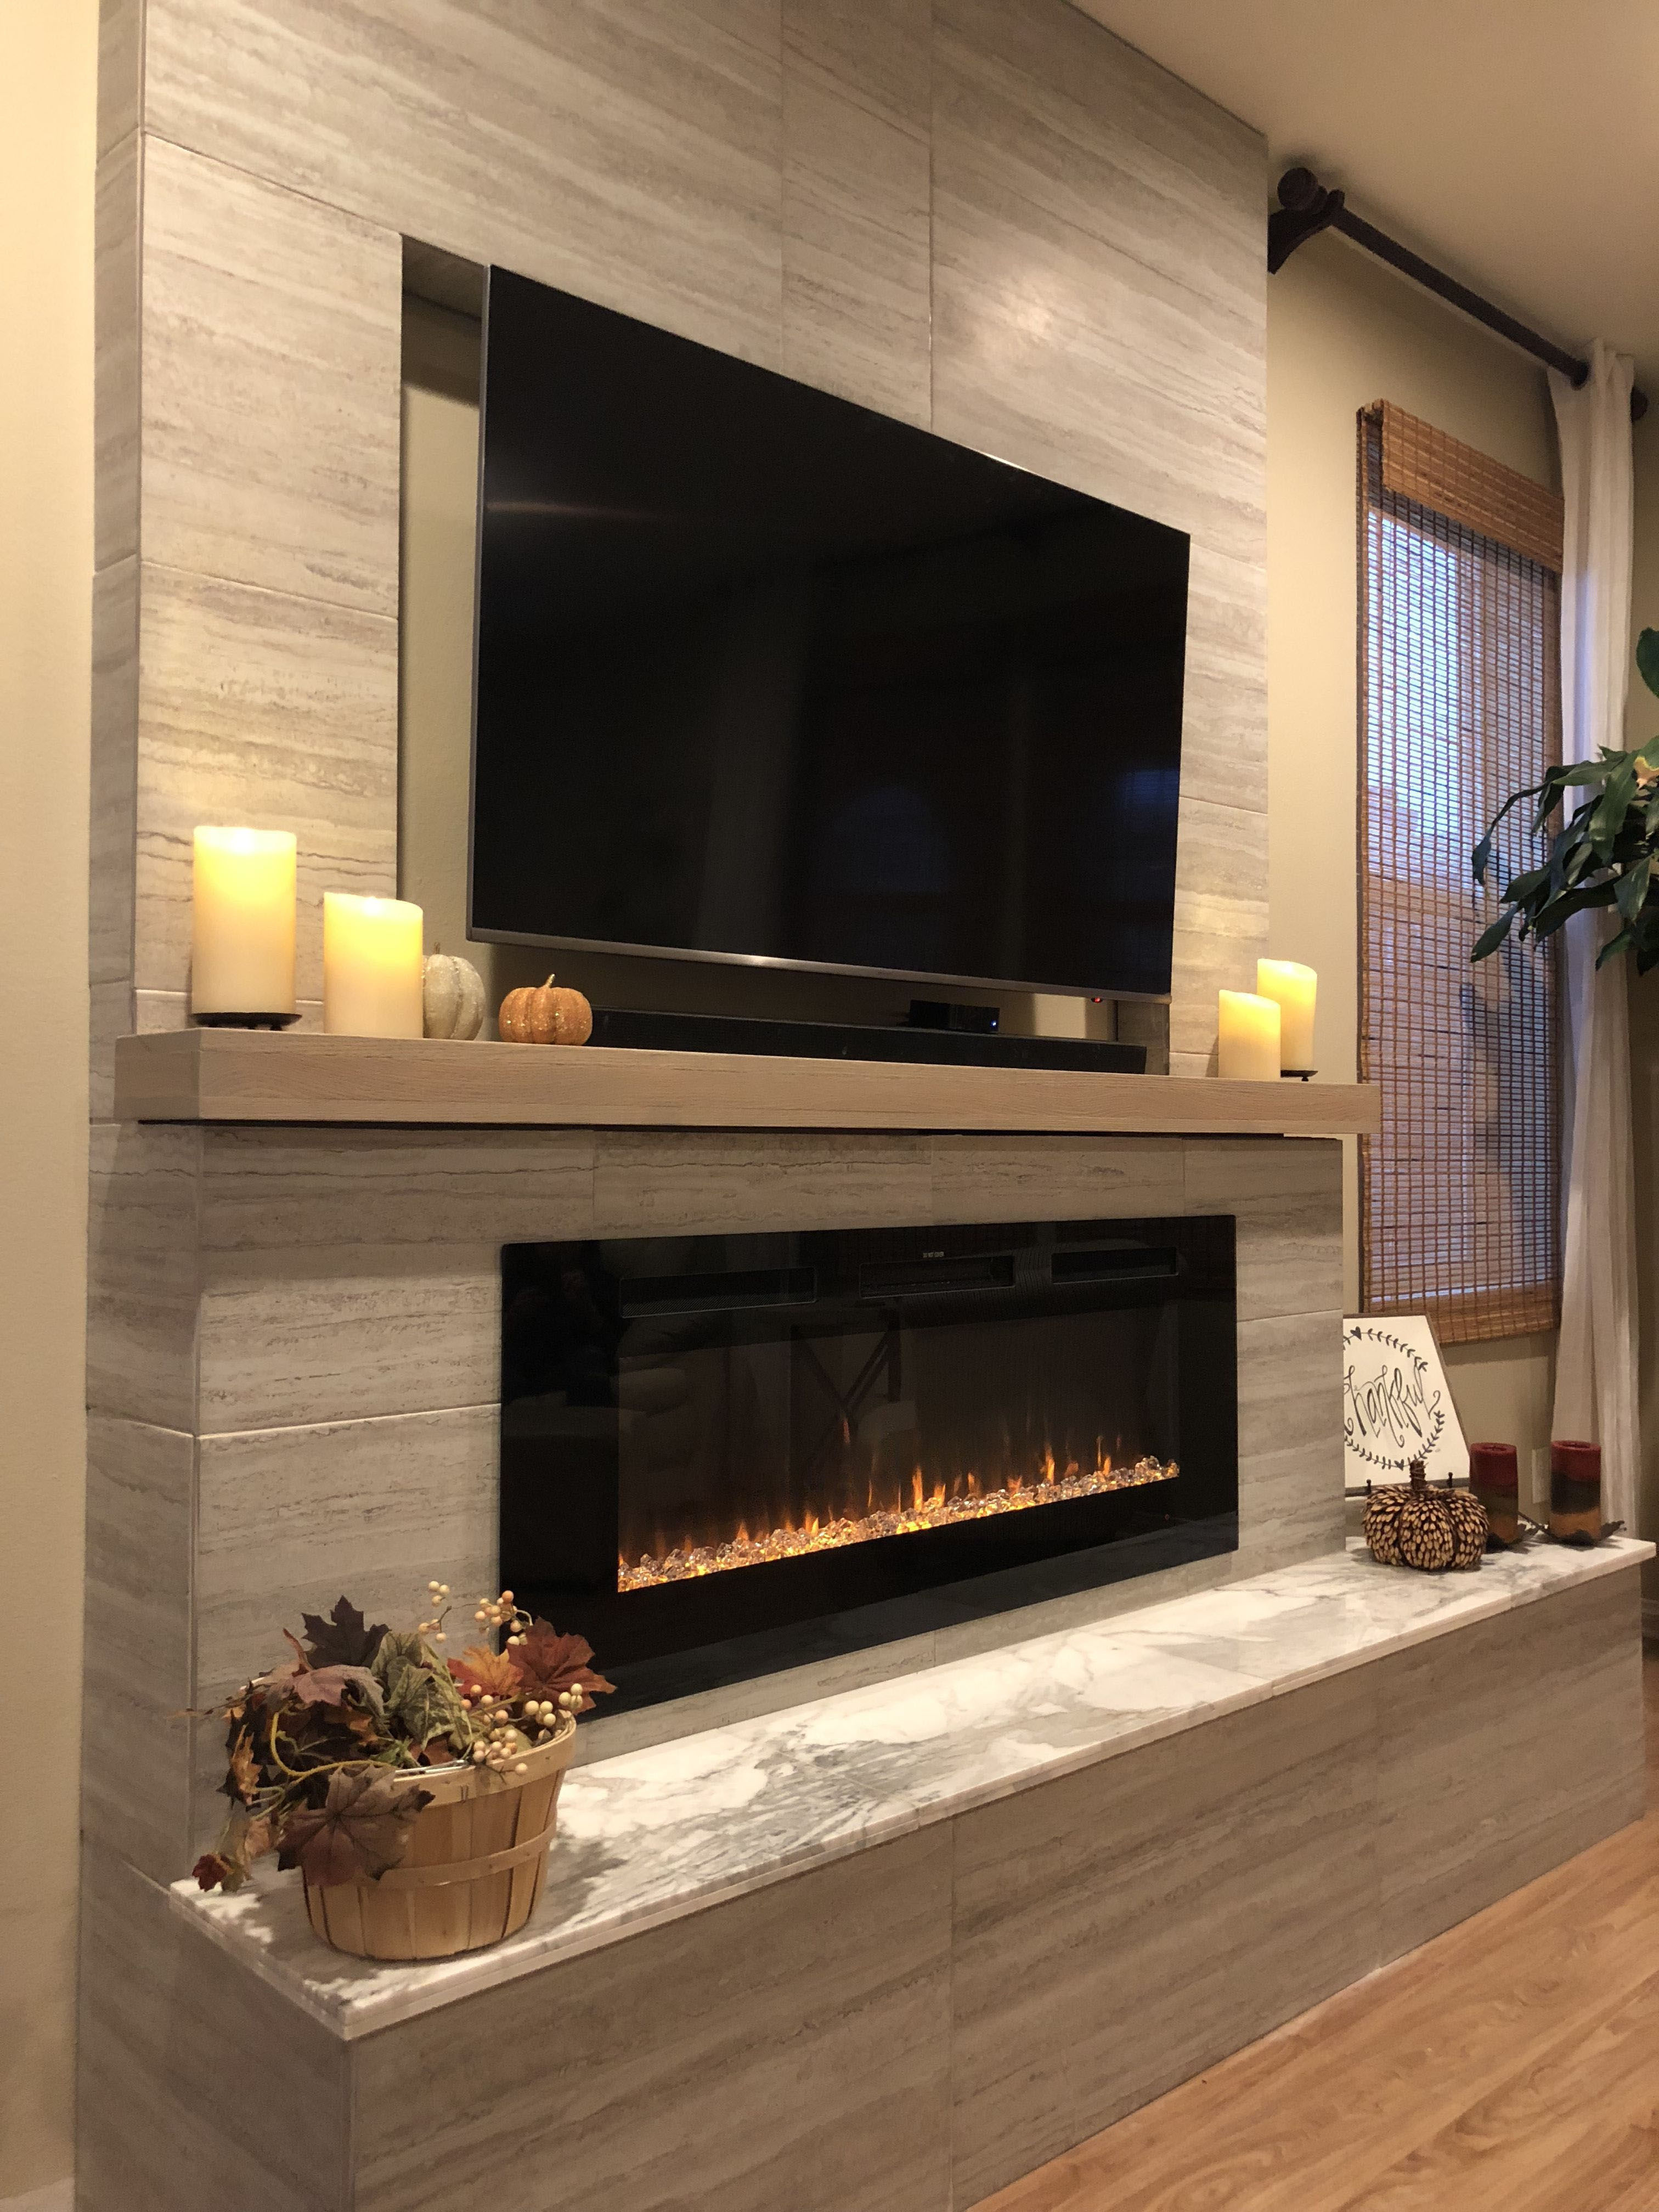 Remarkable Fireplace Ideas For A Small Room For Your Home Fireplace Design Living Room With Fireplace Linear Fireplace